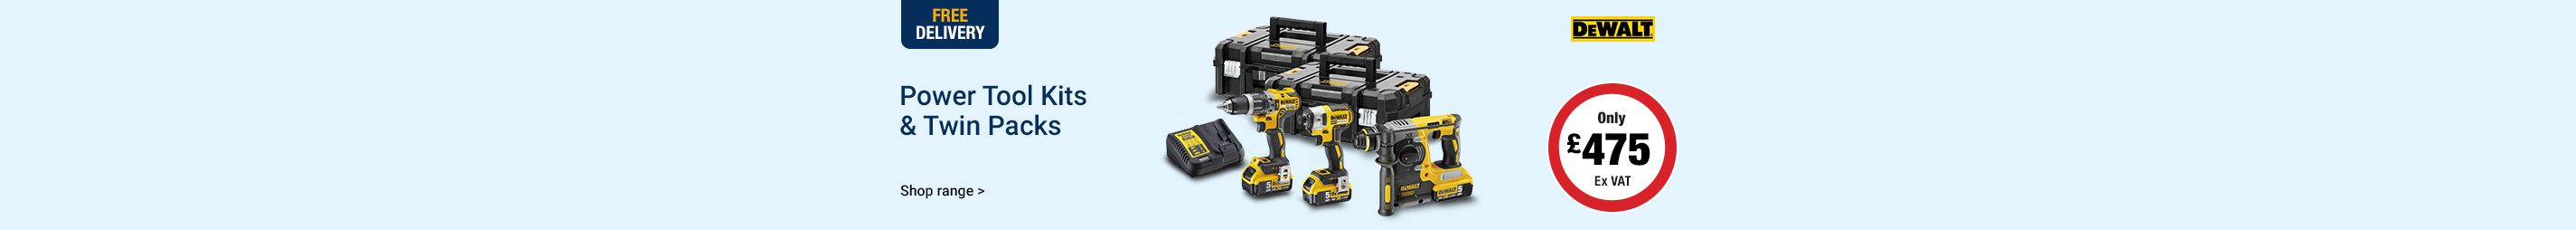 Power Tool Kits & Twin Packs